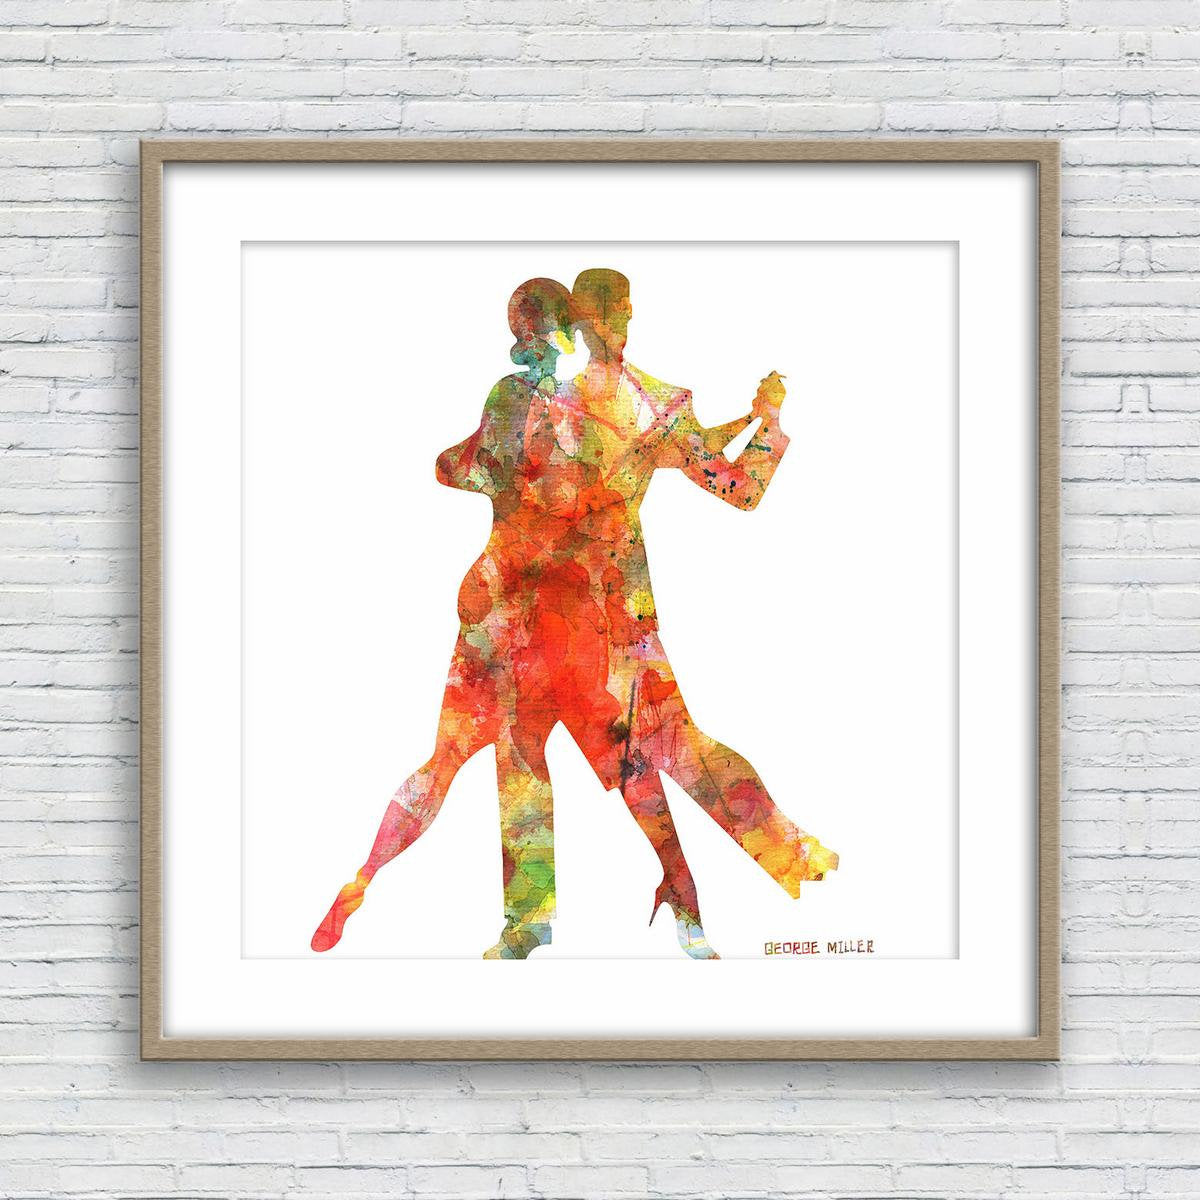 Tango Dance Art Print, Watercolor Art, Wall Decor Bedroom Above Bed, Abstract Art Prints, Art Print, Artwork, Modern Wall Art, Original Art